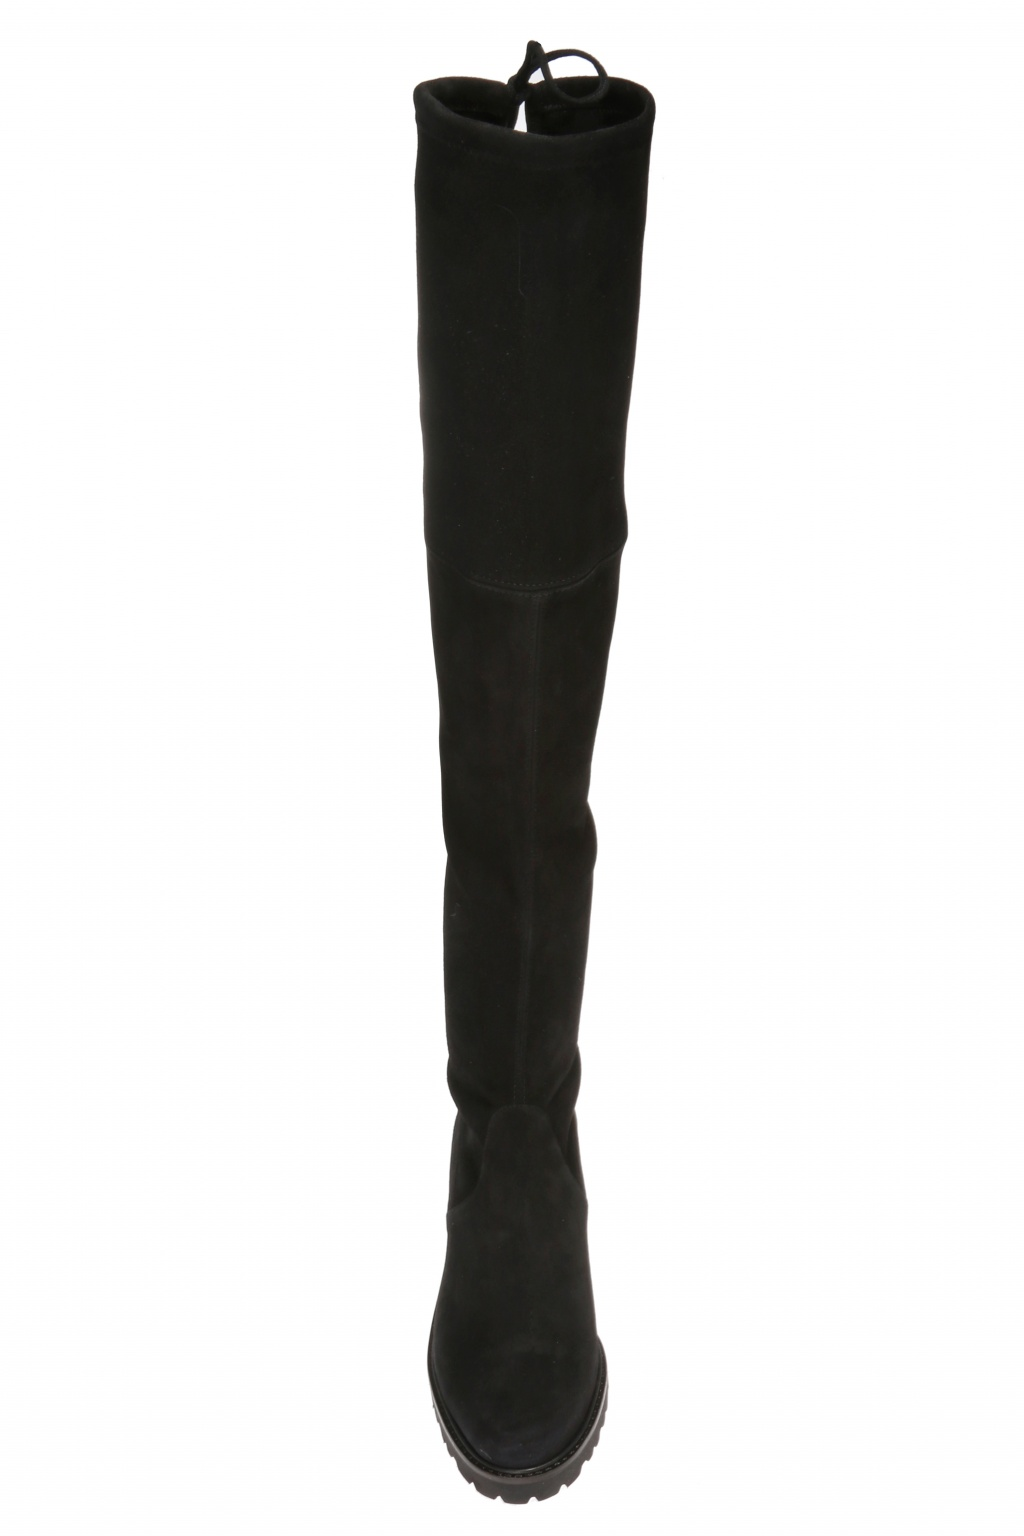 Stuart Weitzman 'Vanland' heeled over-the-knee boots